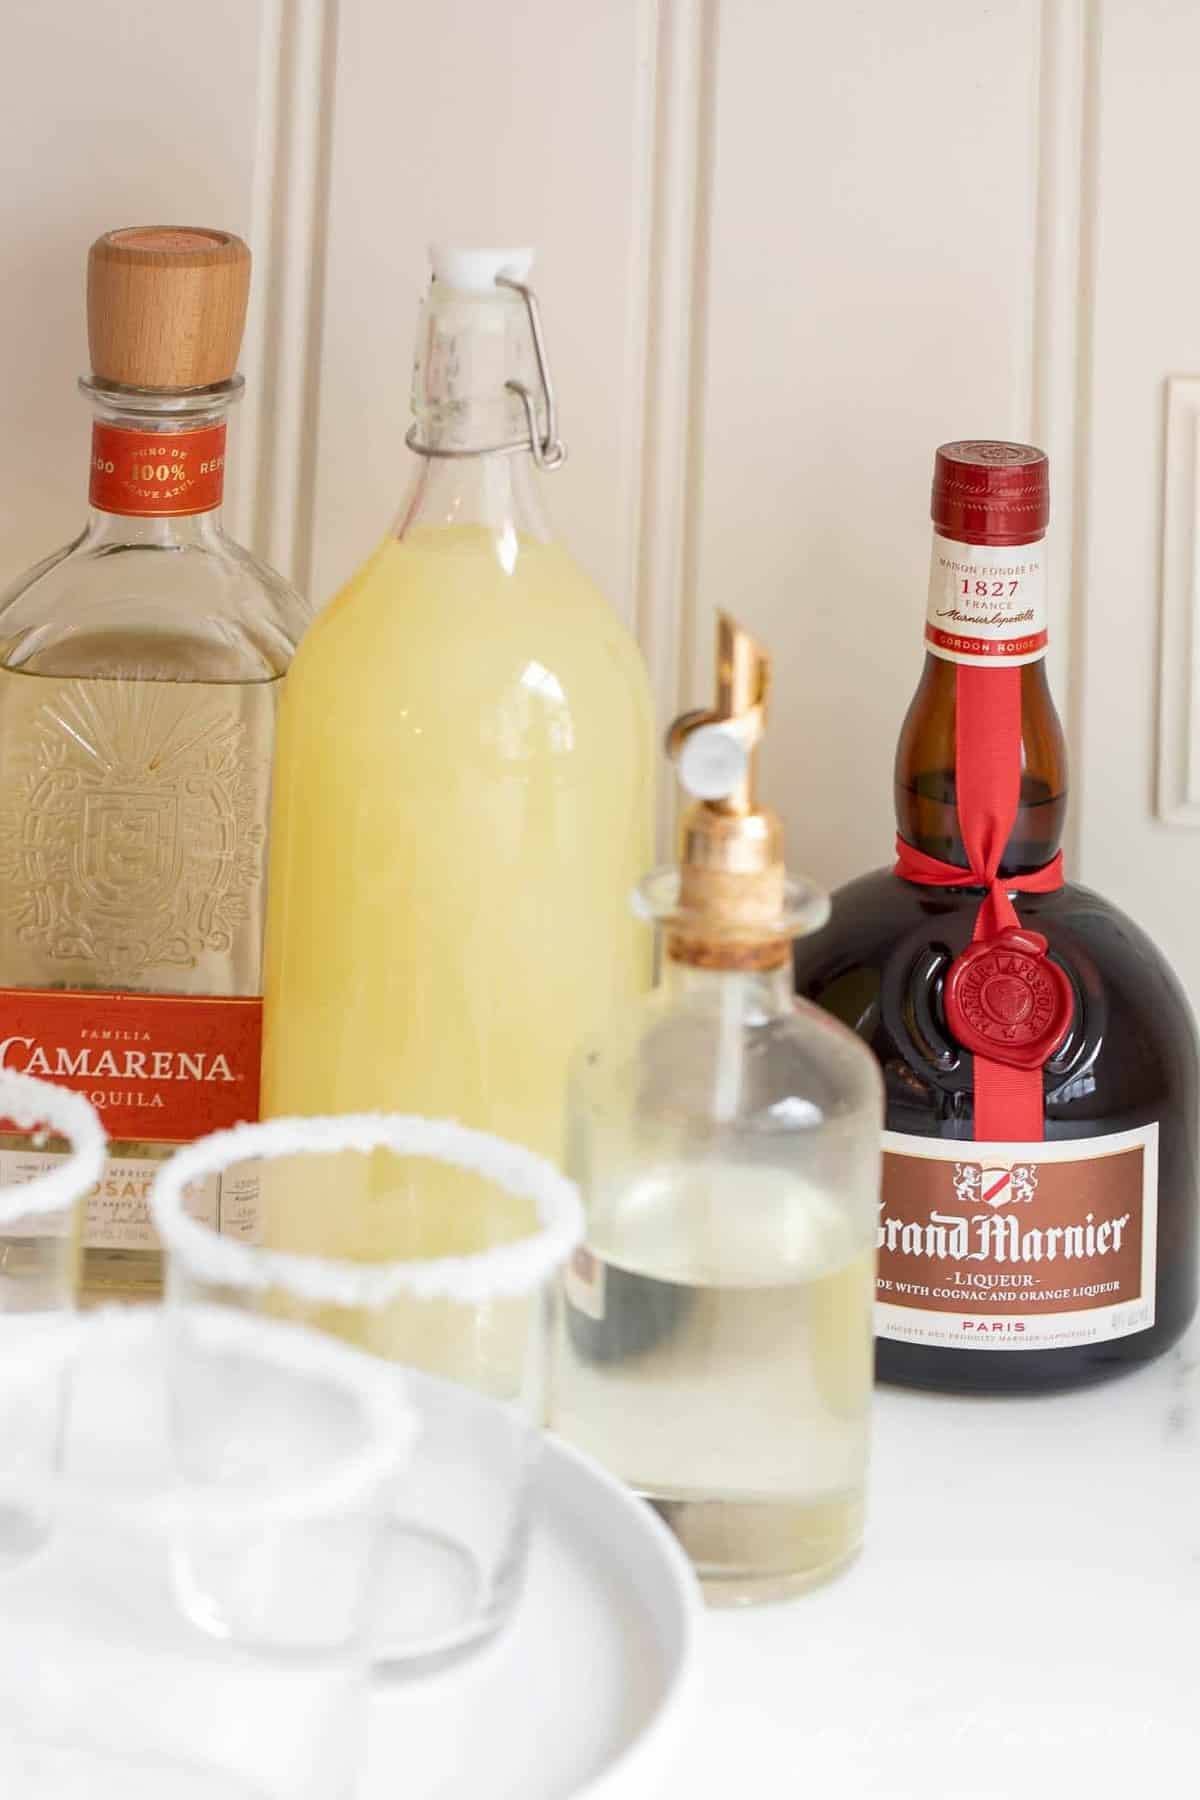 A set up of bottles preparing to make margaritas, with expensive tequila bottle